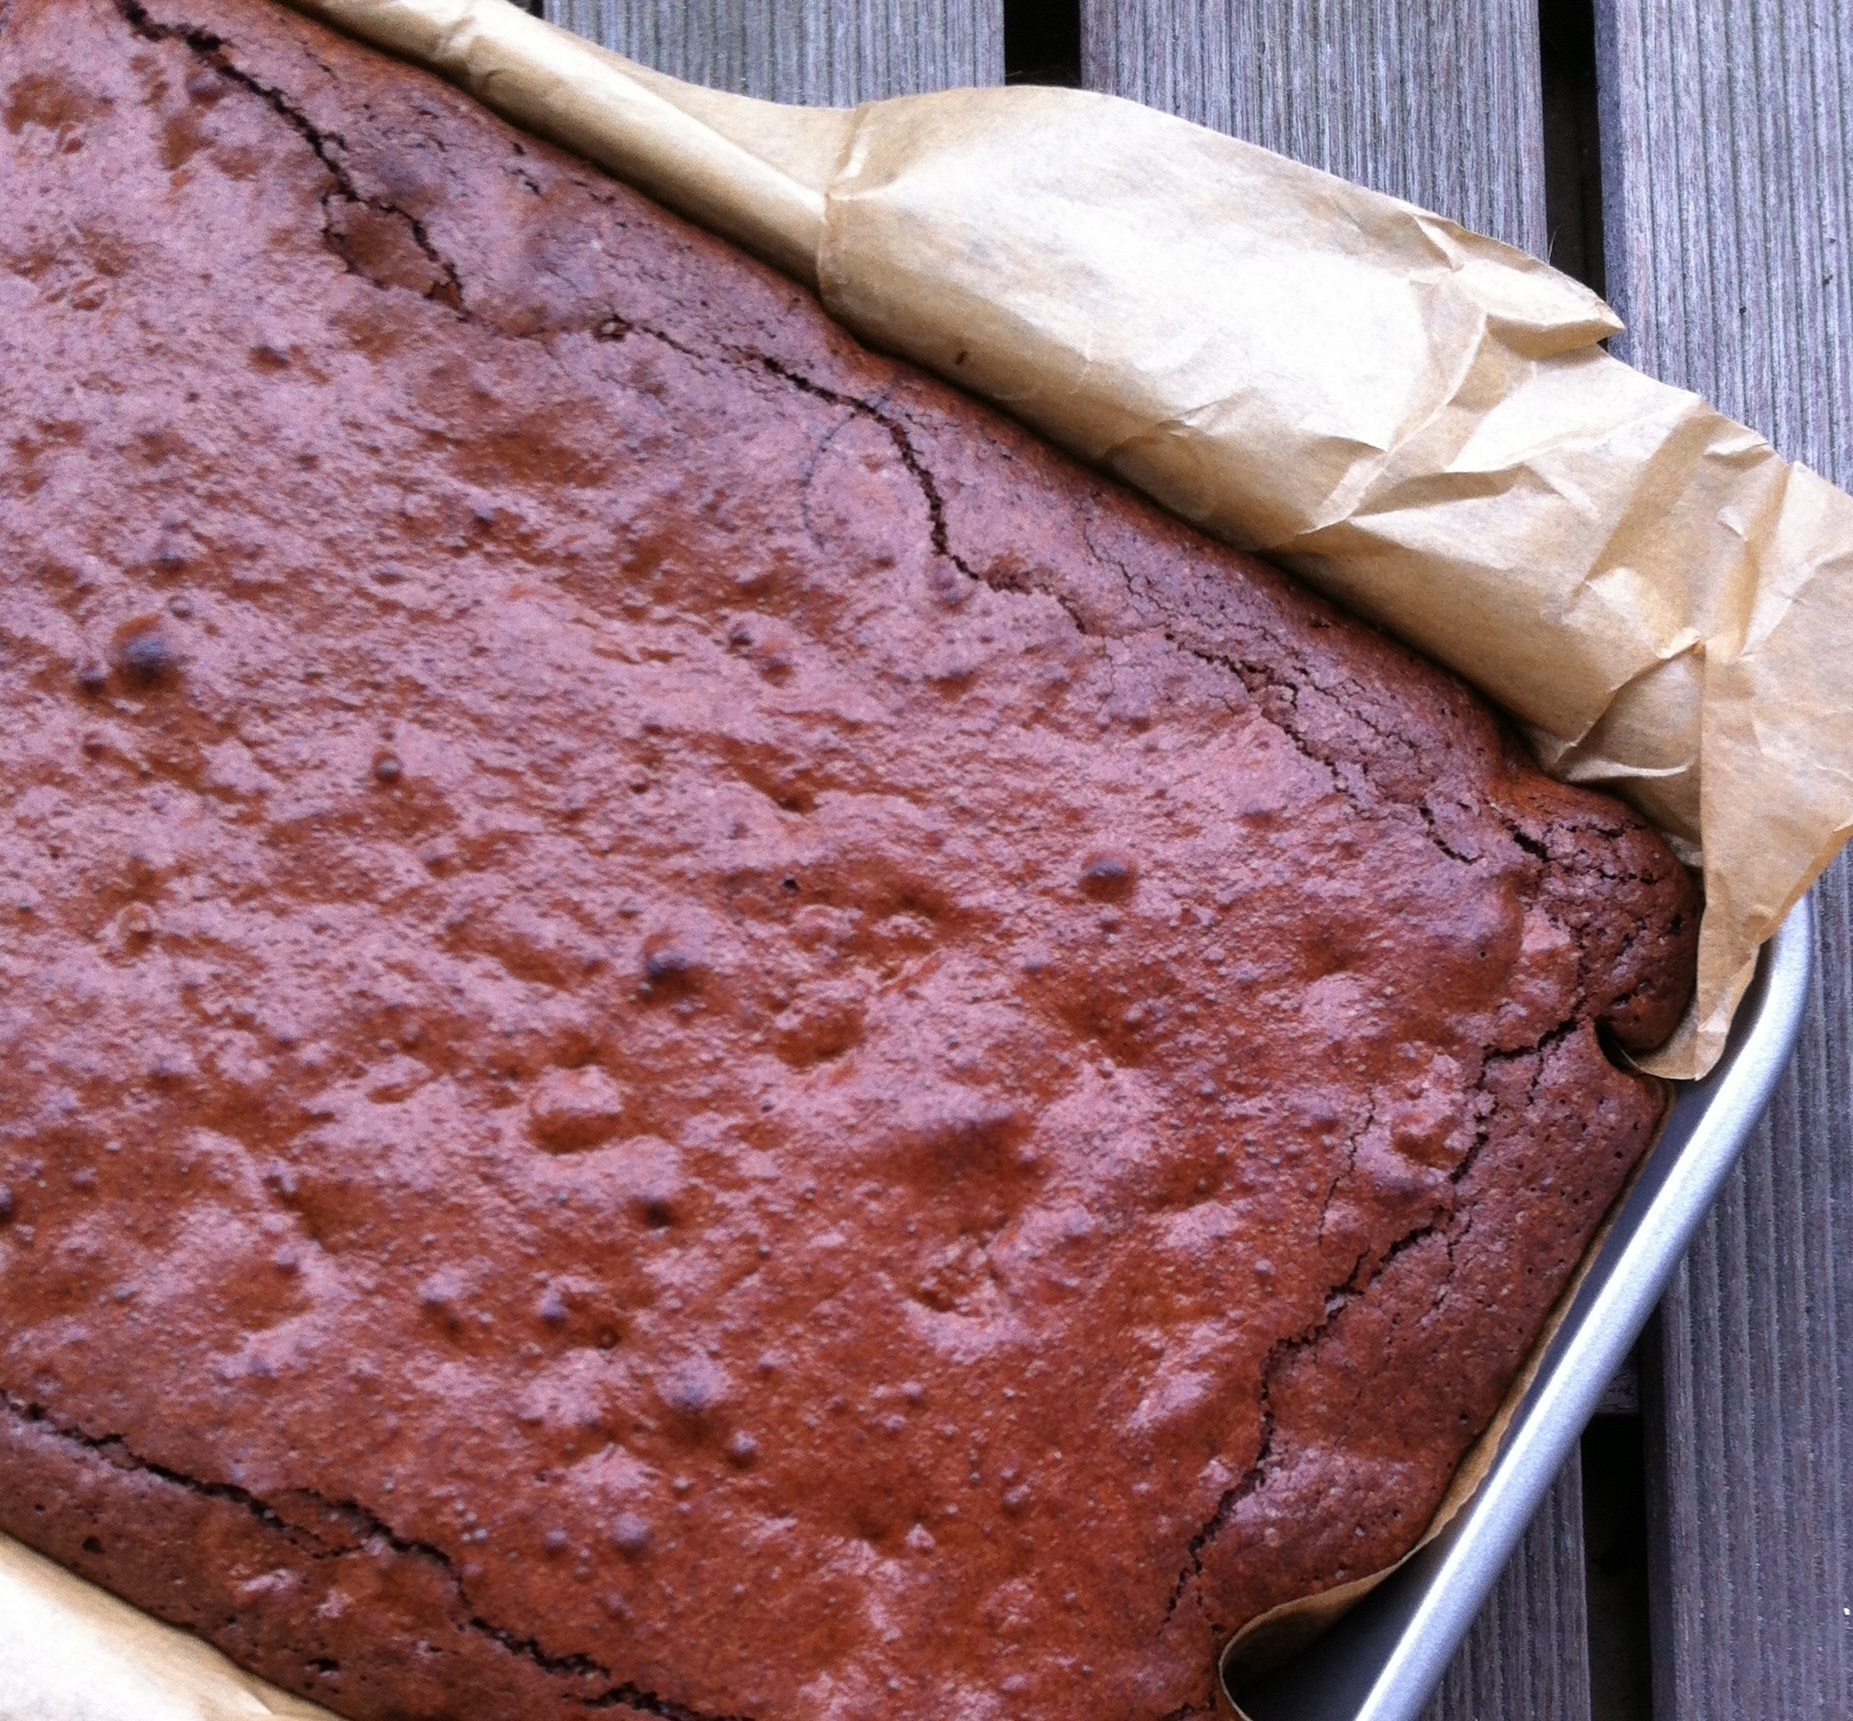 Brownies - blondies - lemonies